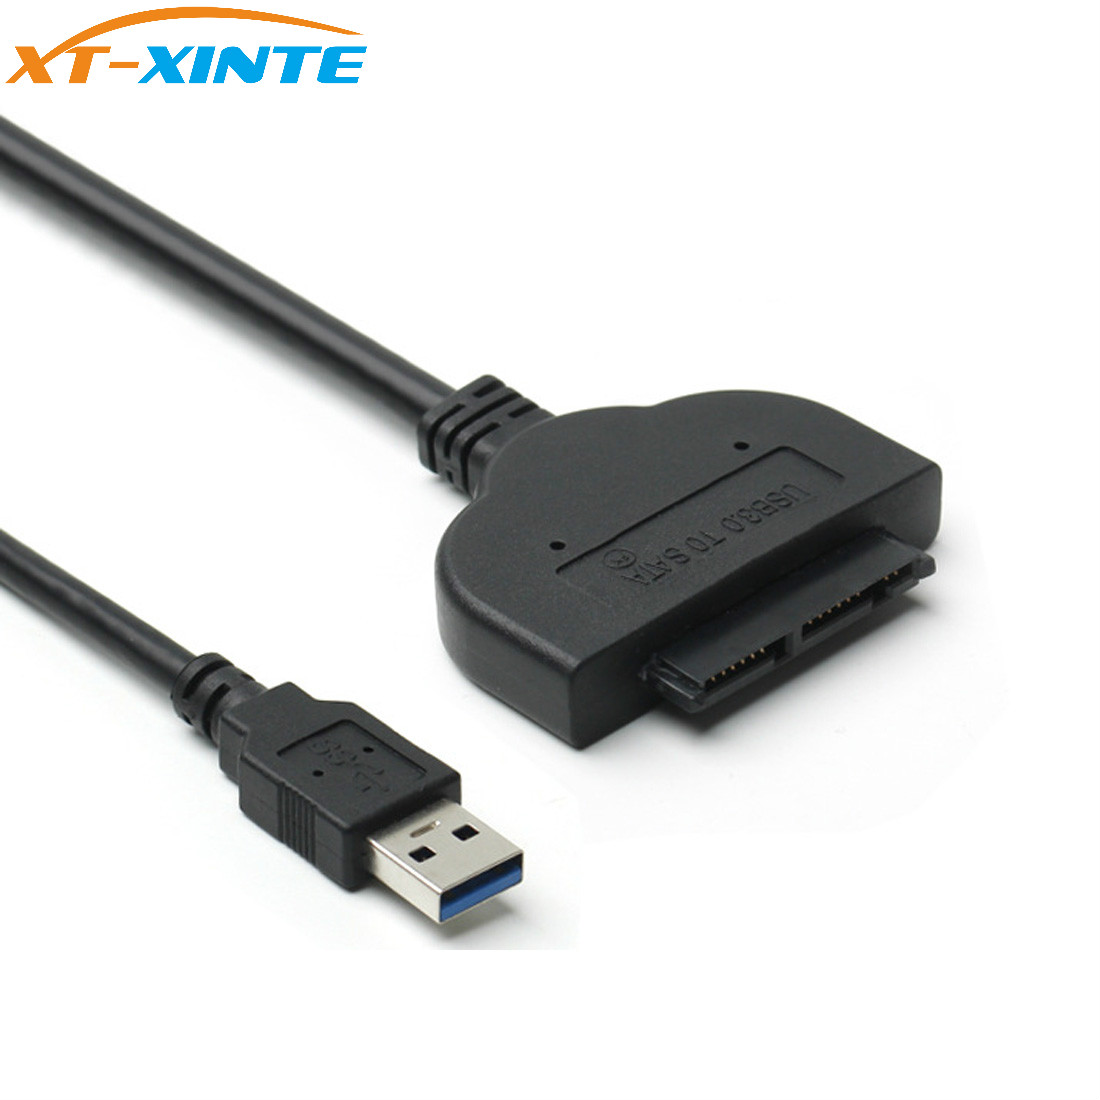 USB SATA Adapter USB 3.0 to Micro SATA 7+9 16Pin Cable 40cm External Hard Drive Converter for USB3.0 1.8 HDD Converter Cord yuzhe leather car seat cover for mitsubishi lancer outlander pajero eclipse zinger verada asx i200 car accessories styling